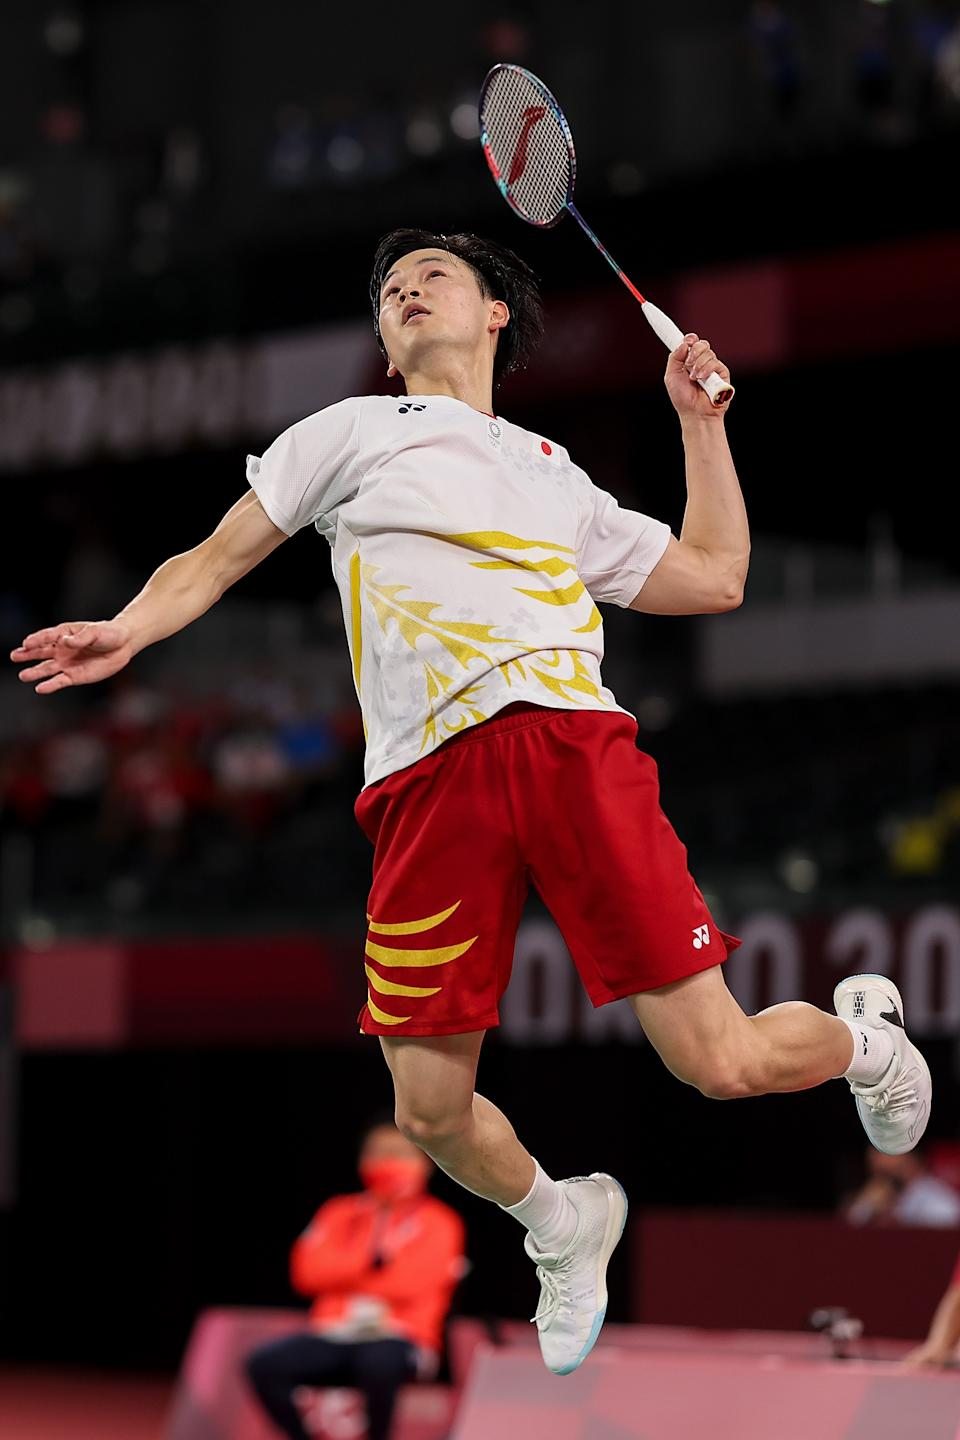 <p>Yuta Watanabe and Arisa Higashino(not in picture) of Team Japan compete against Wang Yi Lyu and Huang Dong Ping of Team China during a Mixed Doubles Semi-final match on day six of the Tokyo 2020 Olympic Games at Musashino Forest Sport Plaza on July 29, 2021 in Chofu, Tokyo, Japan. (Photo by Lintao Zhang/Getty Images)</p>